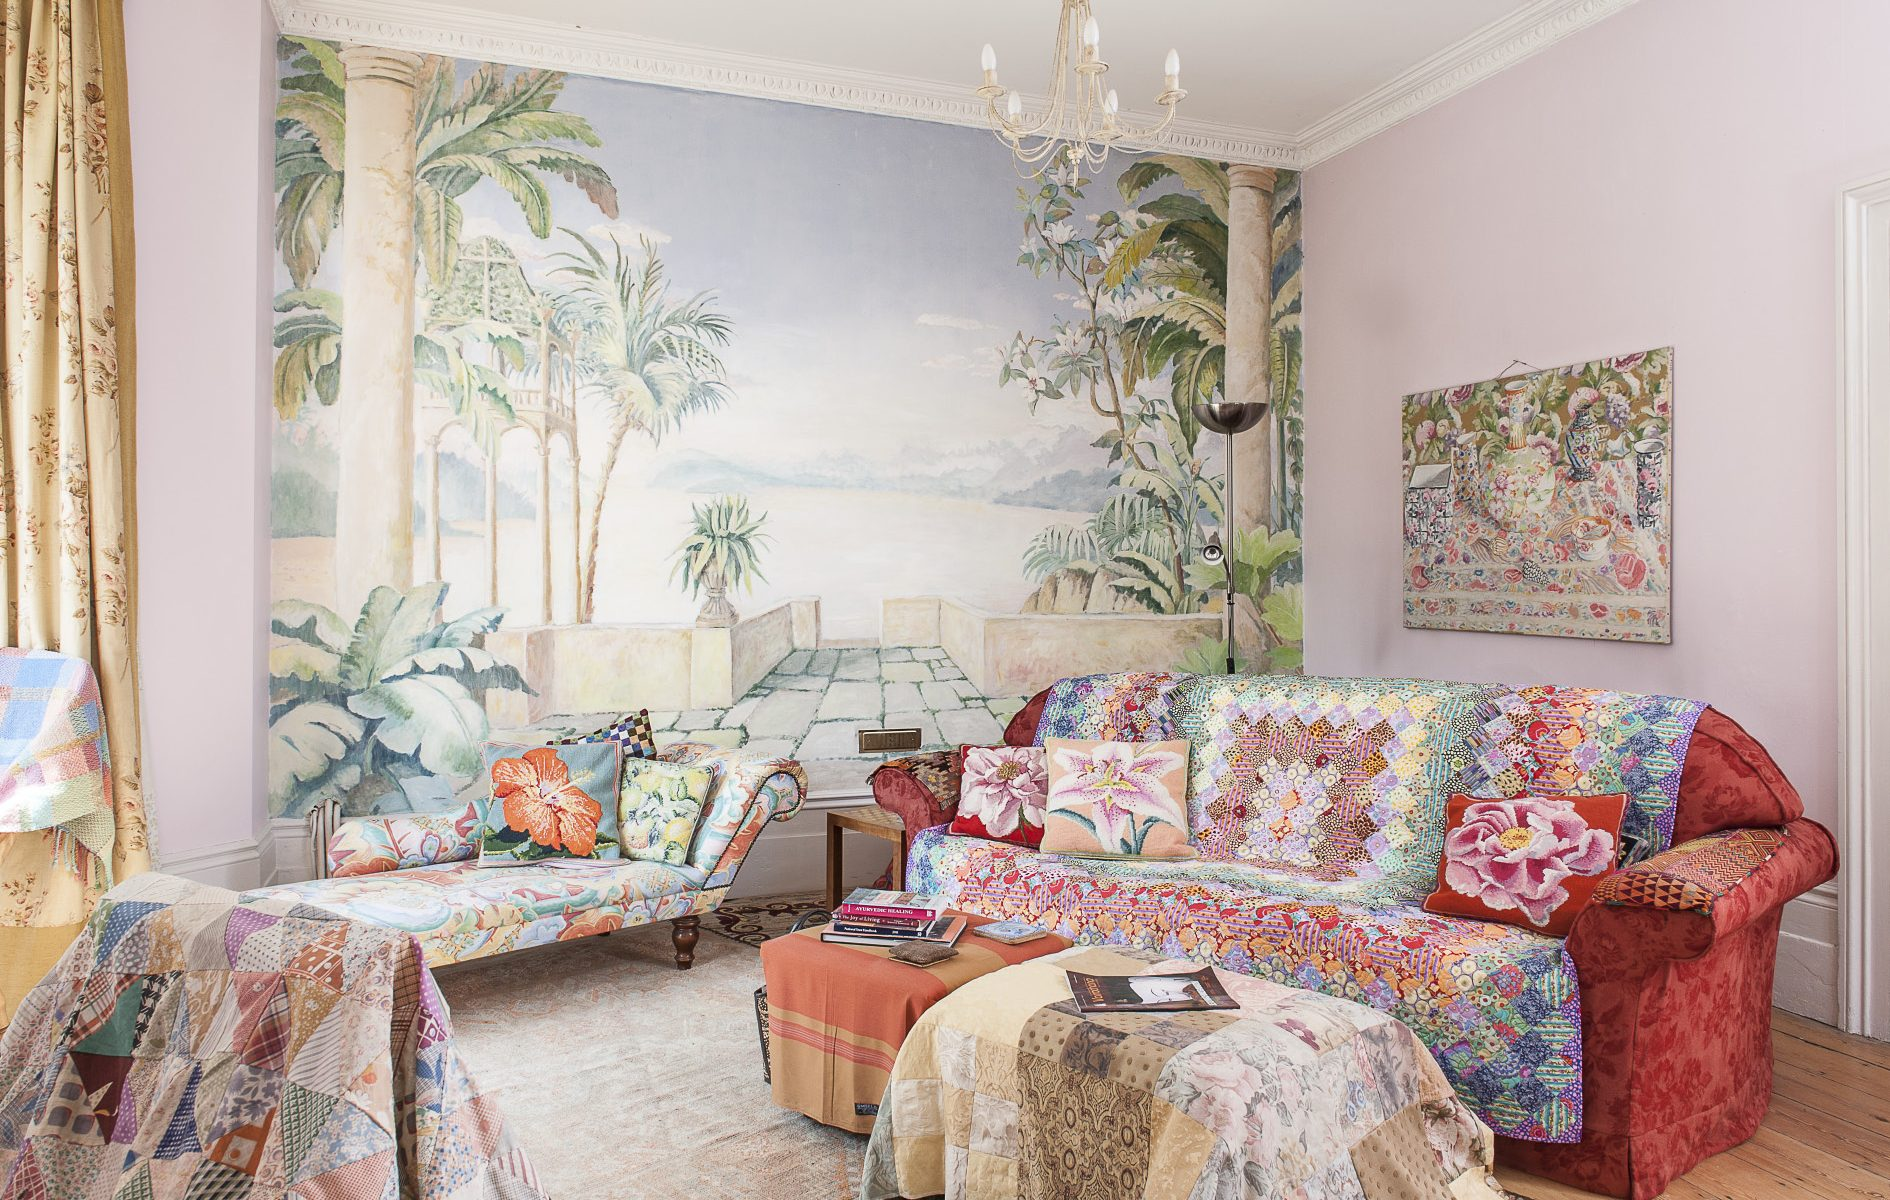 The living room alone is filled with countless examples of Kaffe's work, set against the most enchanting mural, which fills the entire end wall